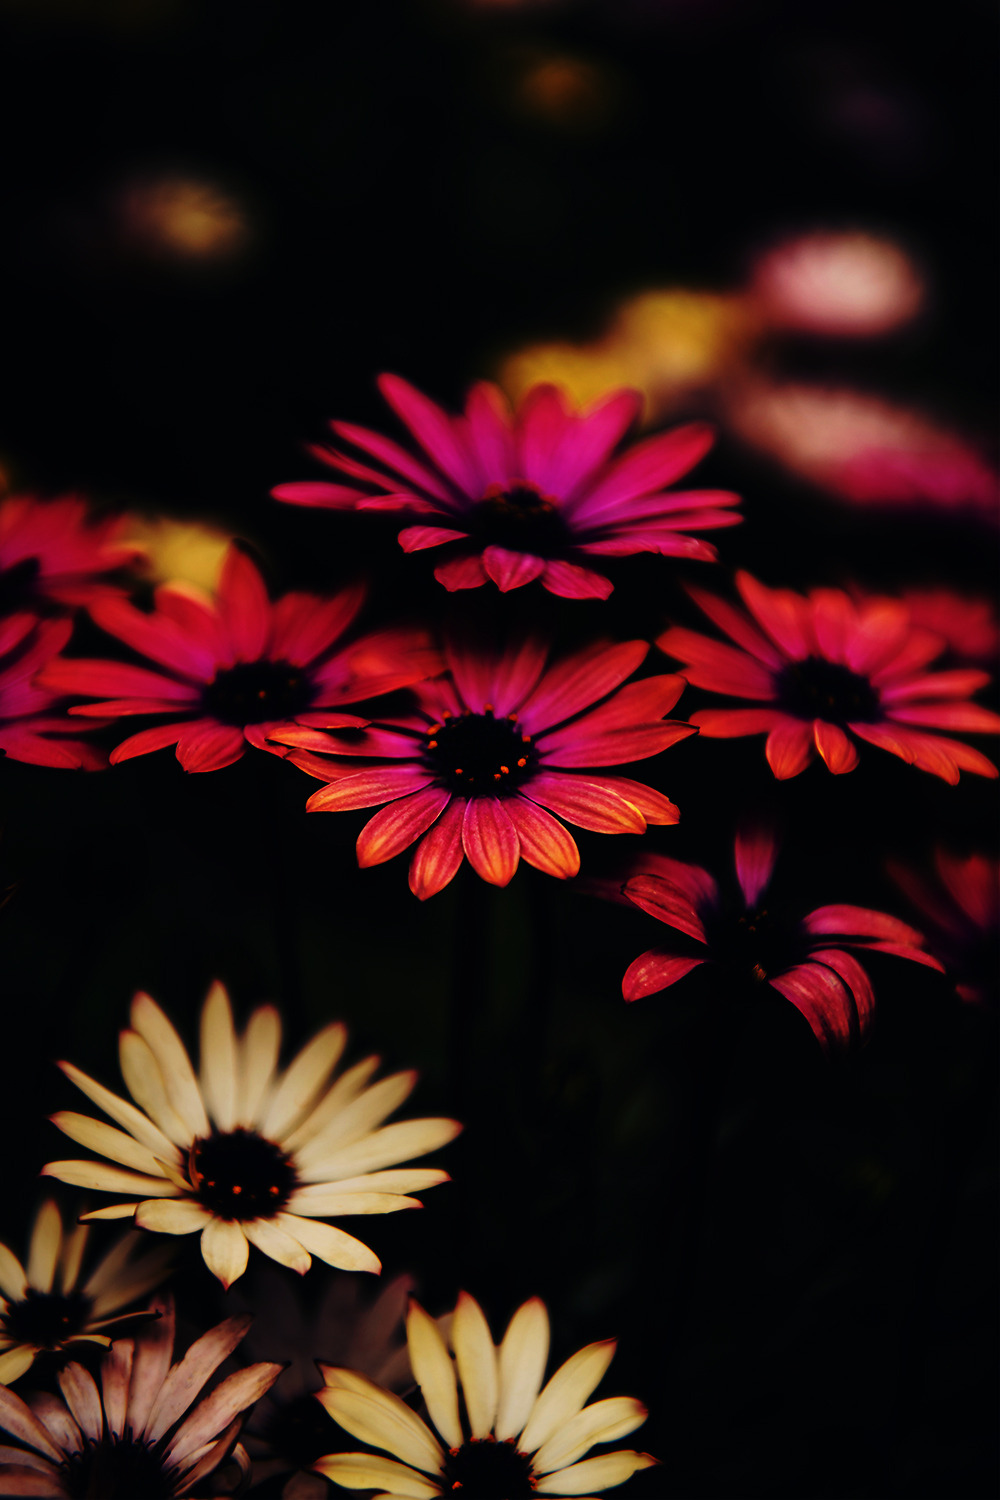 Beautiful Flowers Images Hd Free Download Iphone Wallpapers In 2020 Beautiful Flowers Hd Wallpapers Beautiful Flowers Images Hd Beautiful Flowers Wallpapers